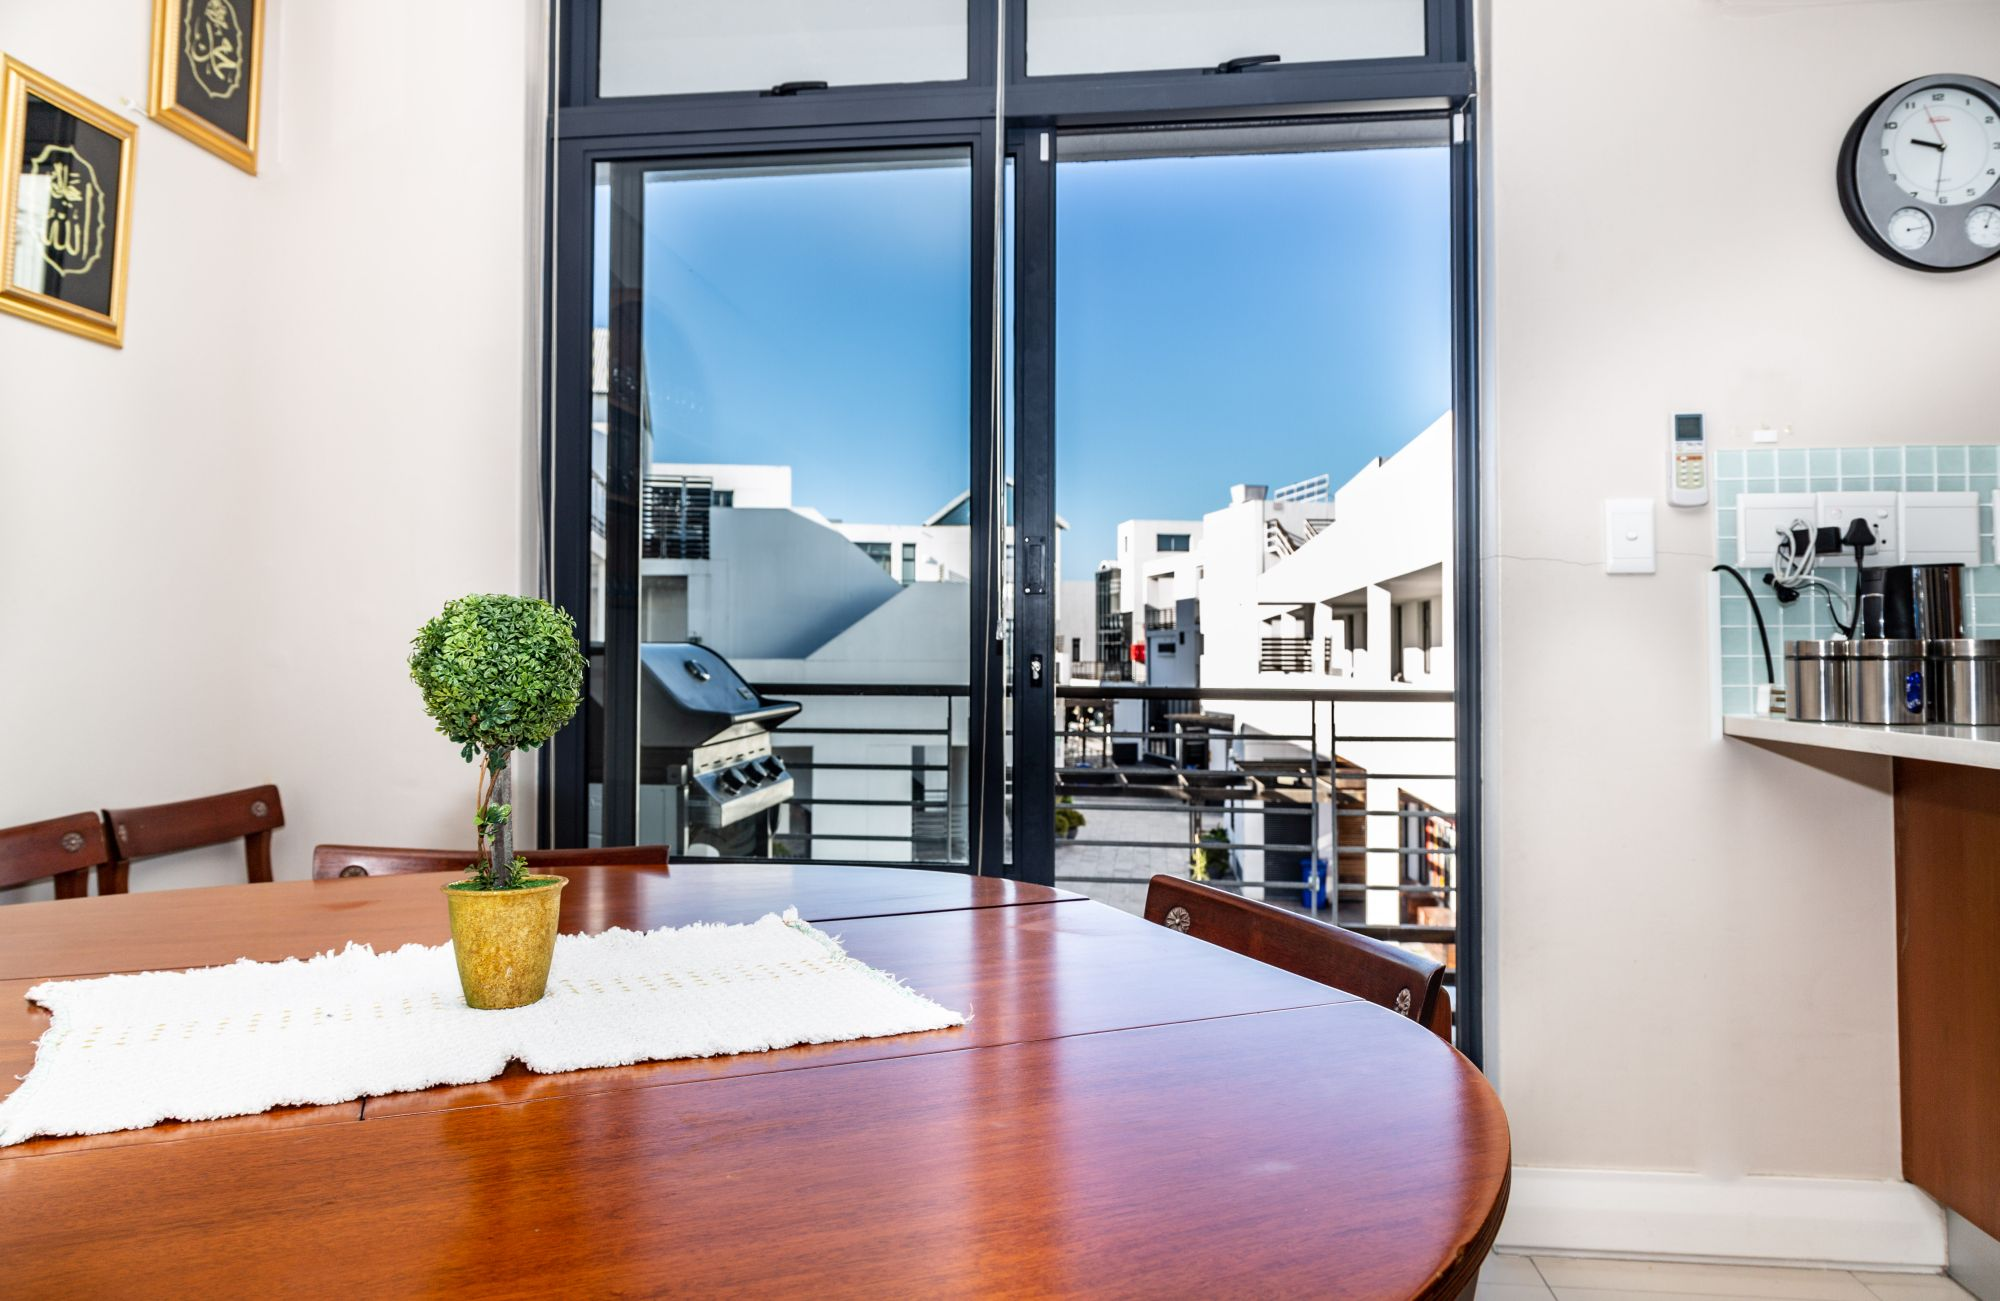 192 Eden On The Bay, 3 Bedroom Apartment in Big Bay, Cape Town